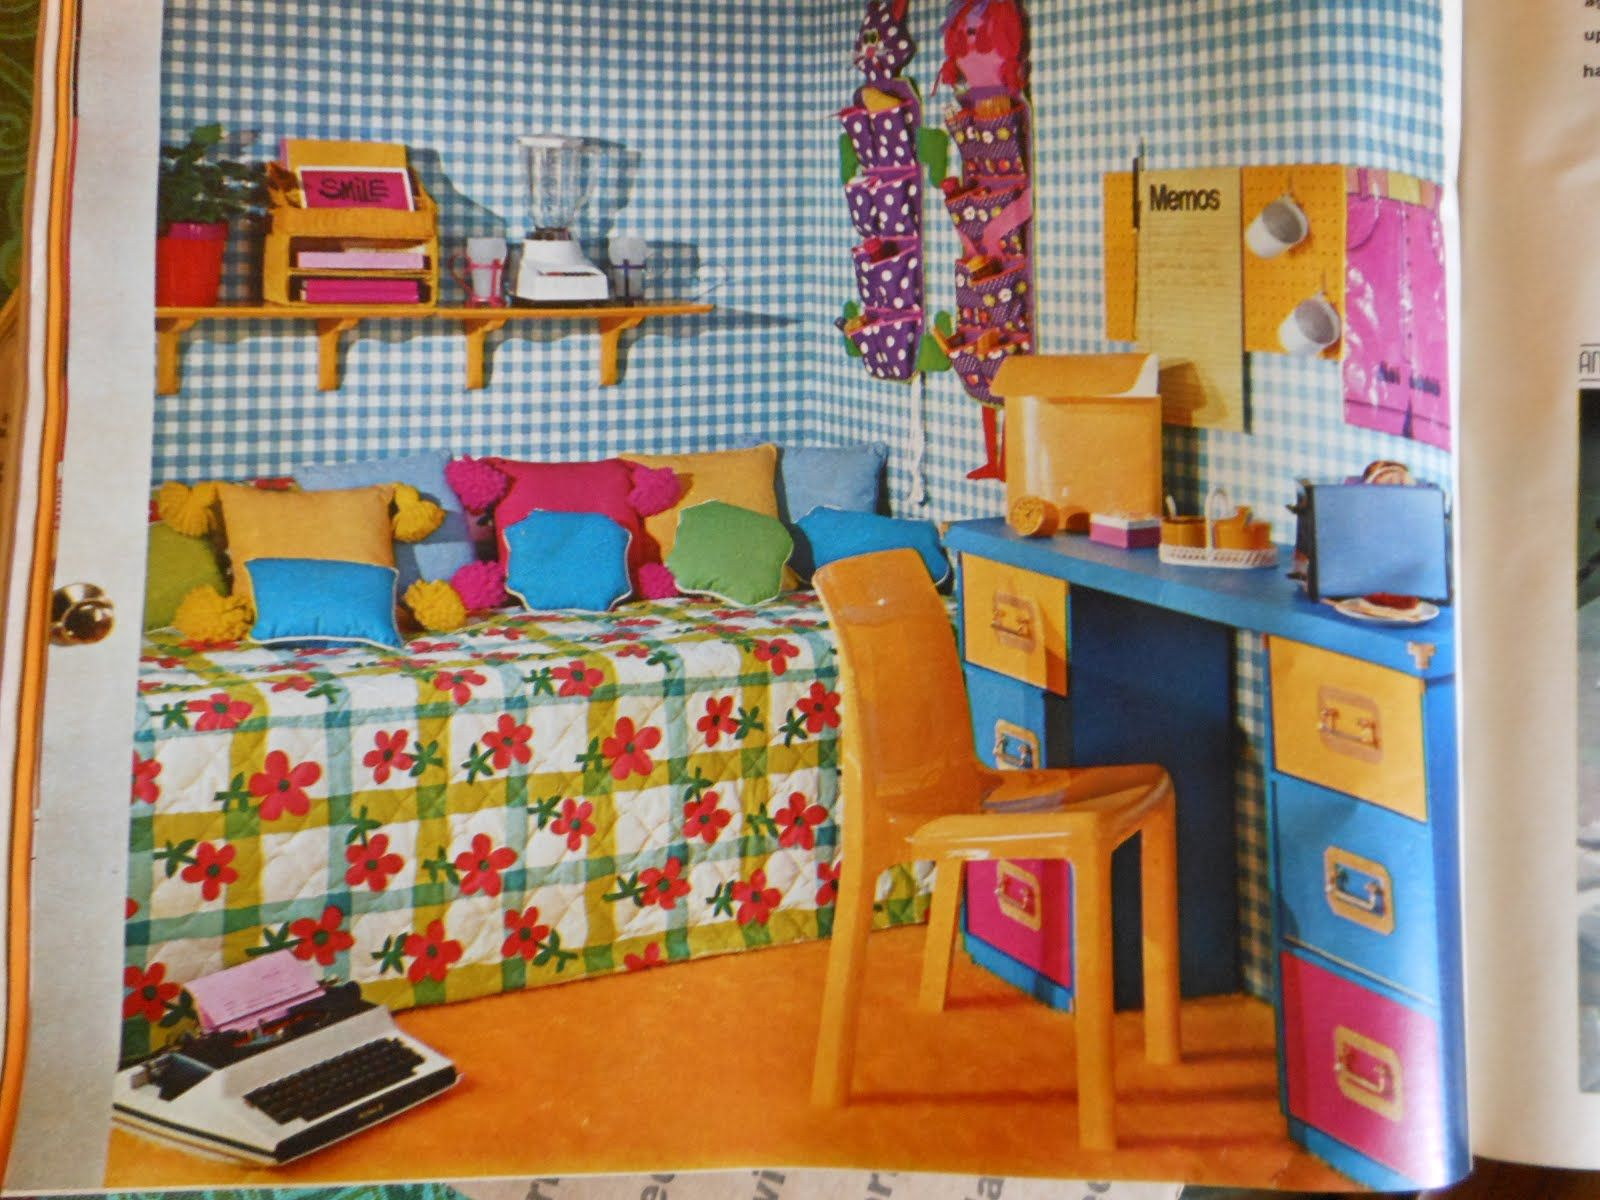 This Room Has Double Complementary Color Scheme The Colors Are Red Pink Green And Blue Orange